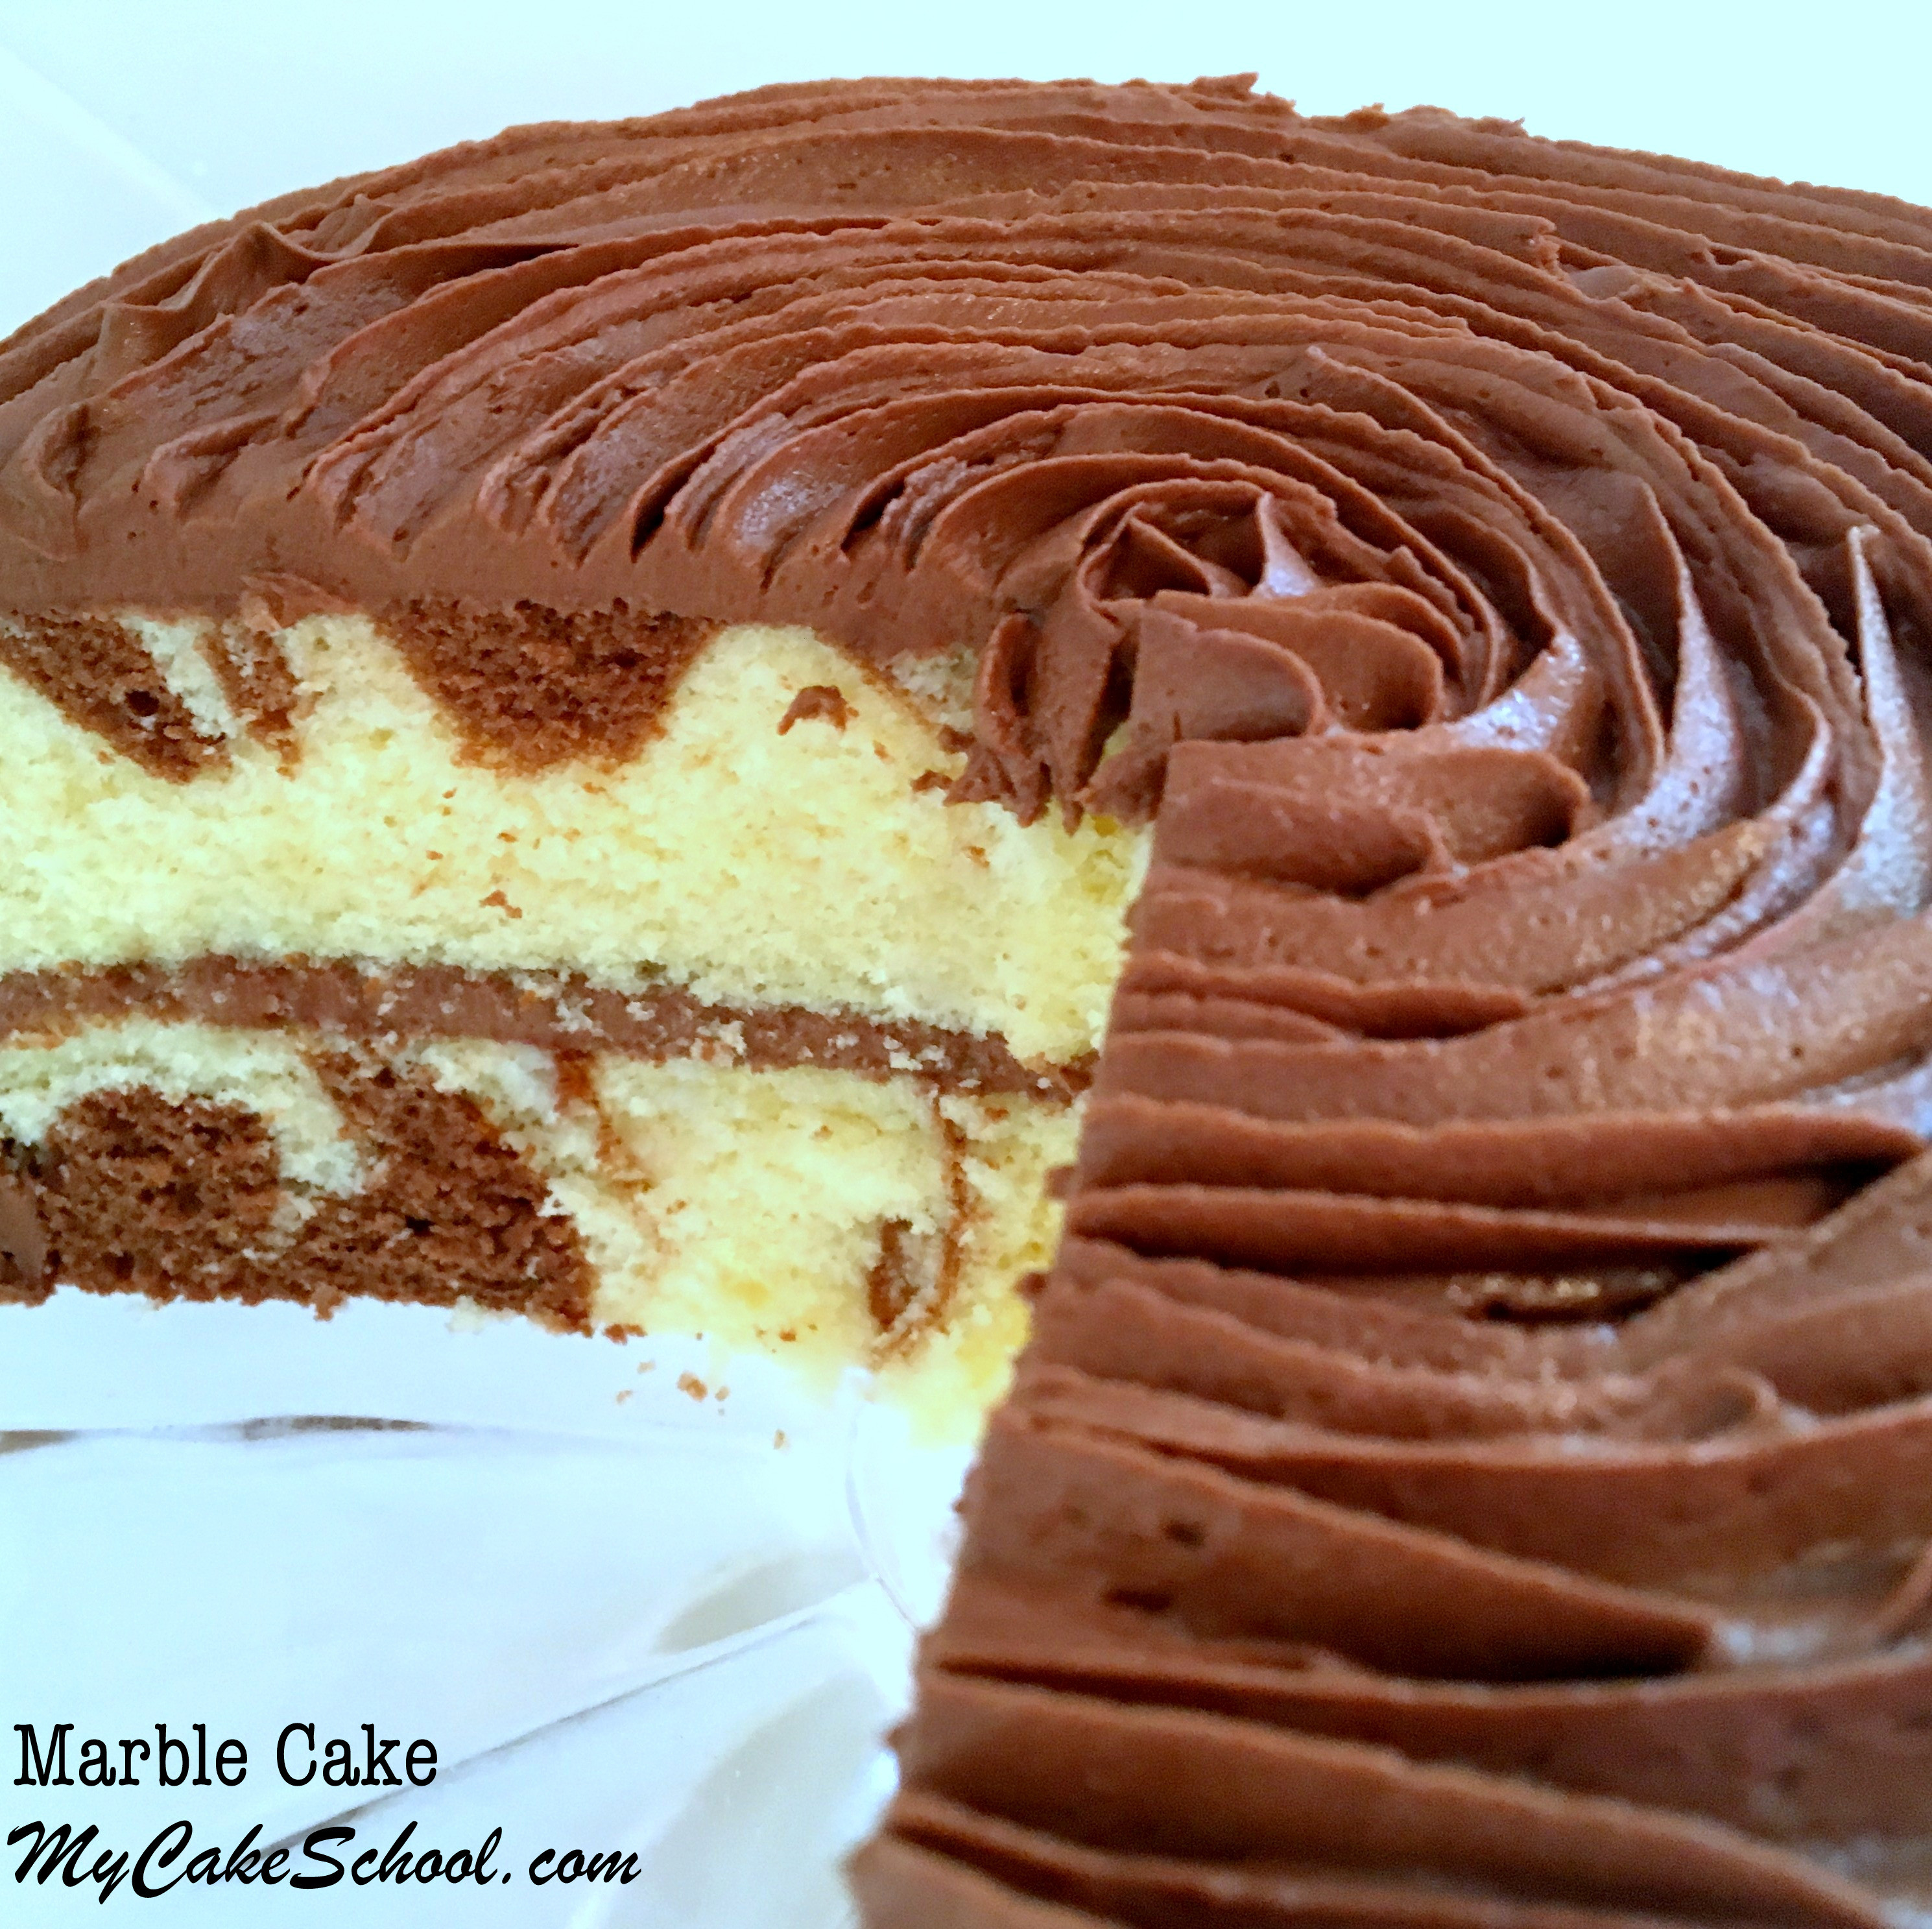 Cake Recipe From Scratch  Moist and Delicious Marble Cake from Scratch